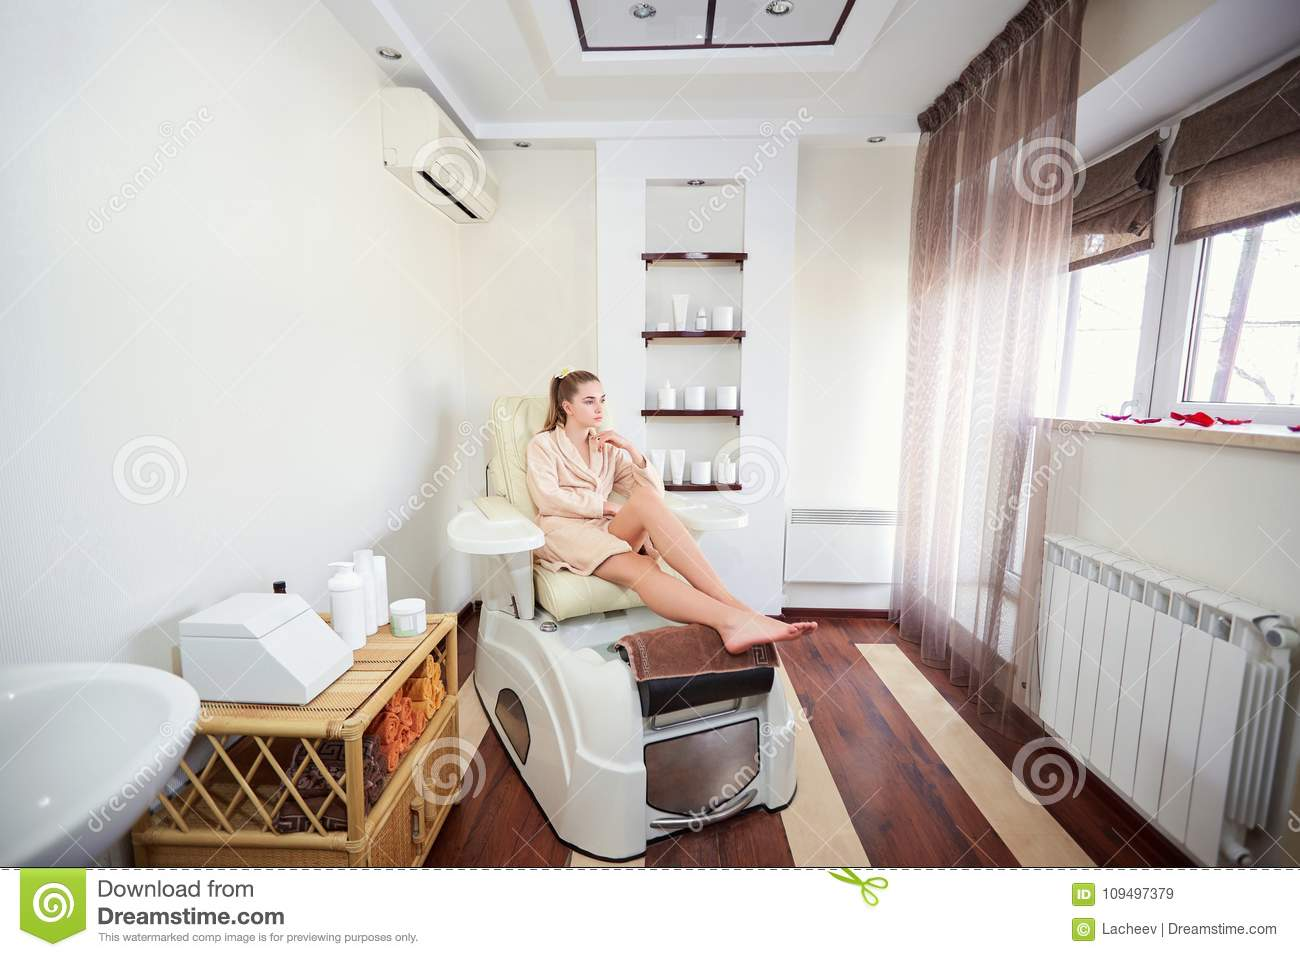 Pedicure Salon A Girl In A Pedicure Salon Sitting In A Chair Stock Image Image